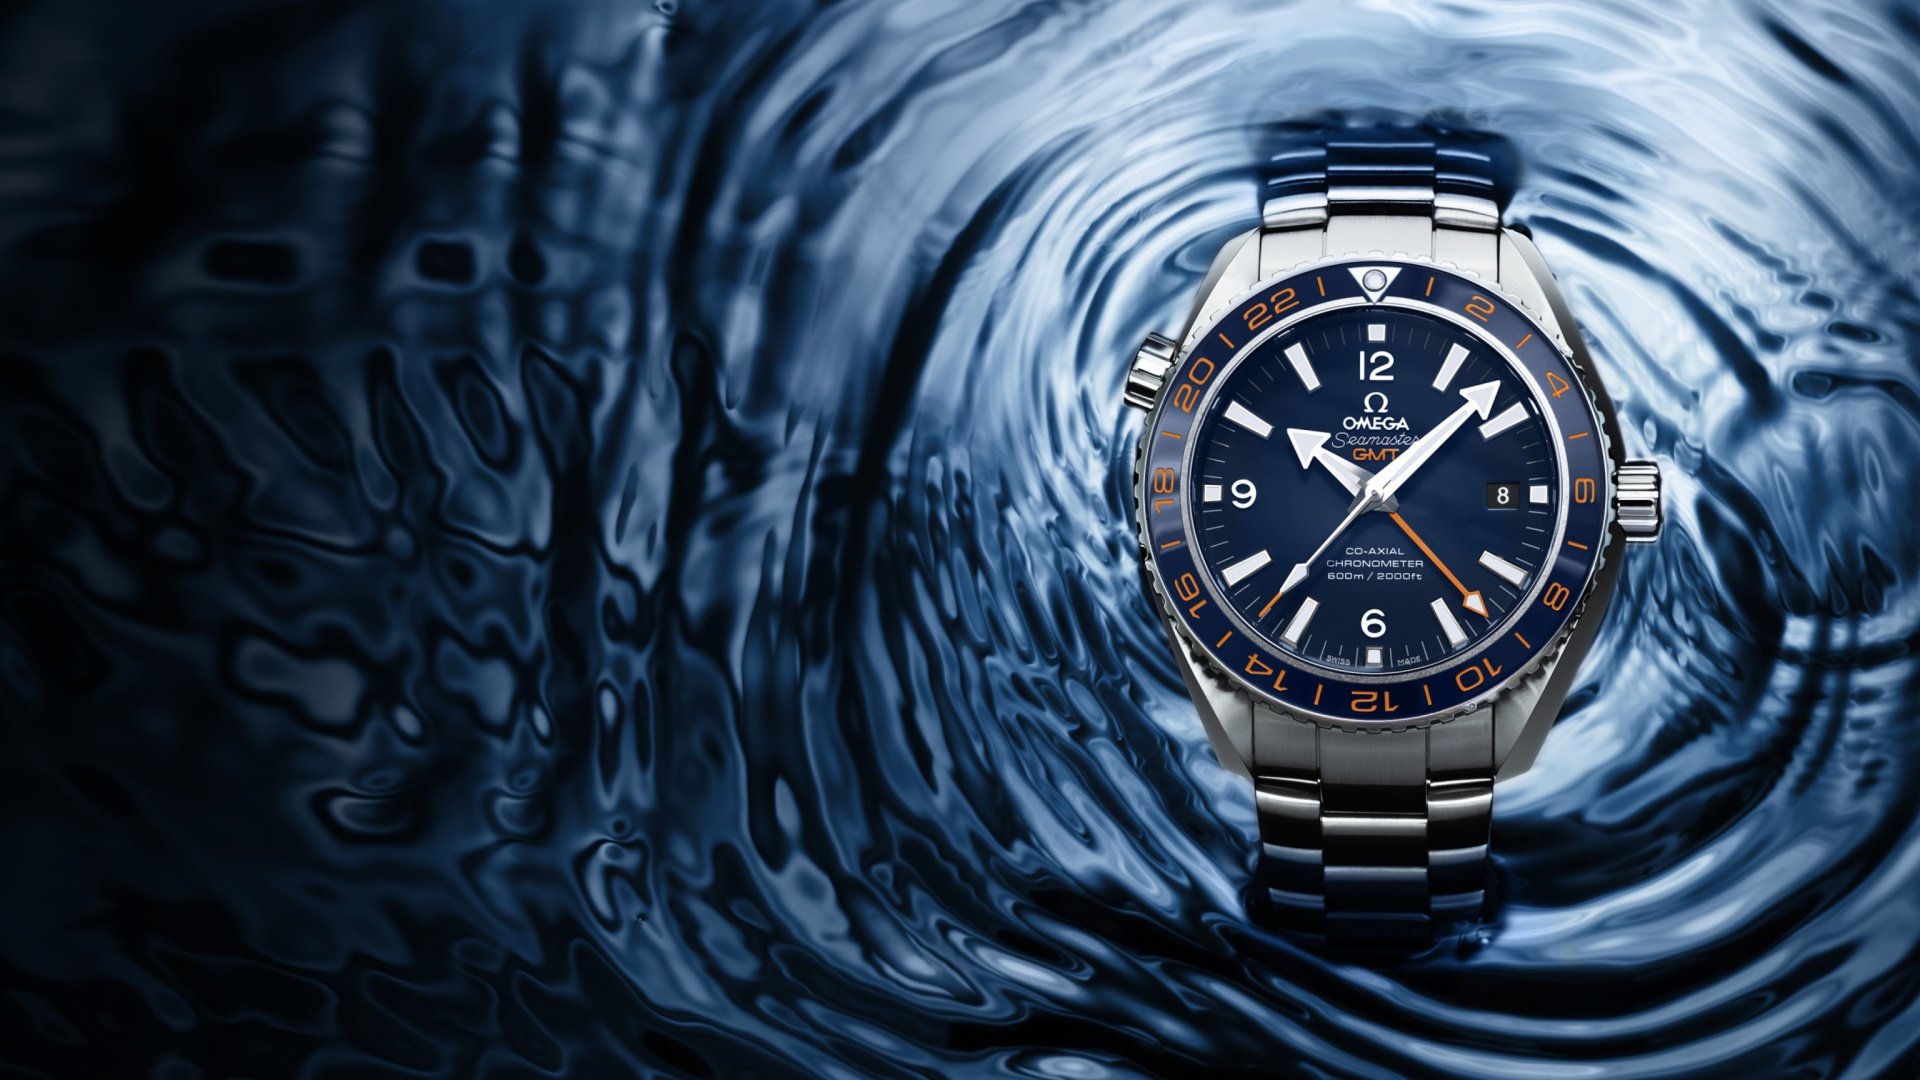 Omega Watches 1920x1080 android wallpaper 1920x1080